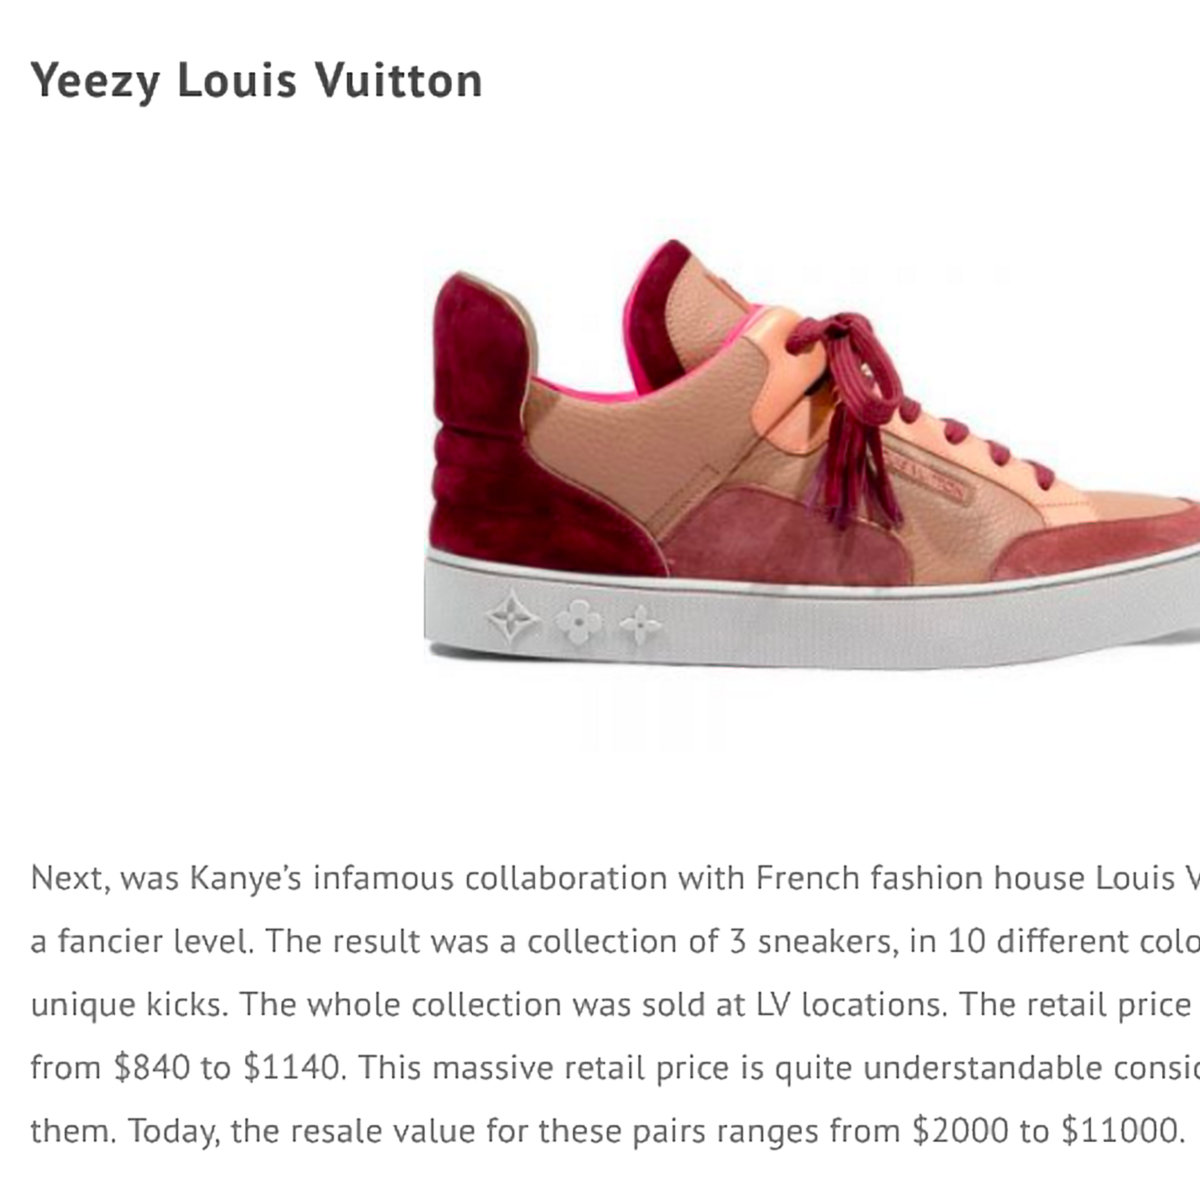 669a7024d ... X LOUIS VUITTON SHOES. from TRYING TO KKKOP YEEZYS AT RESALE VALUE by  MxR-ace EtthnoS